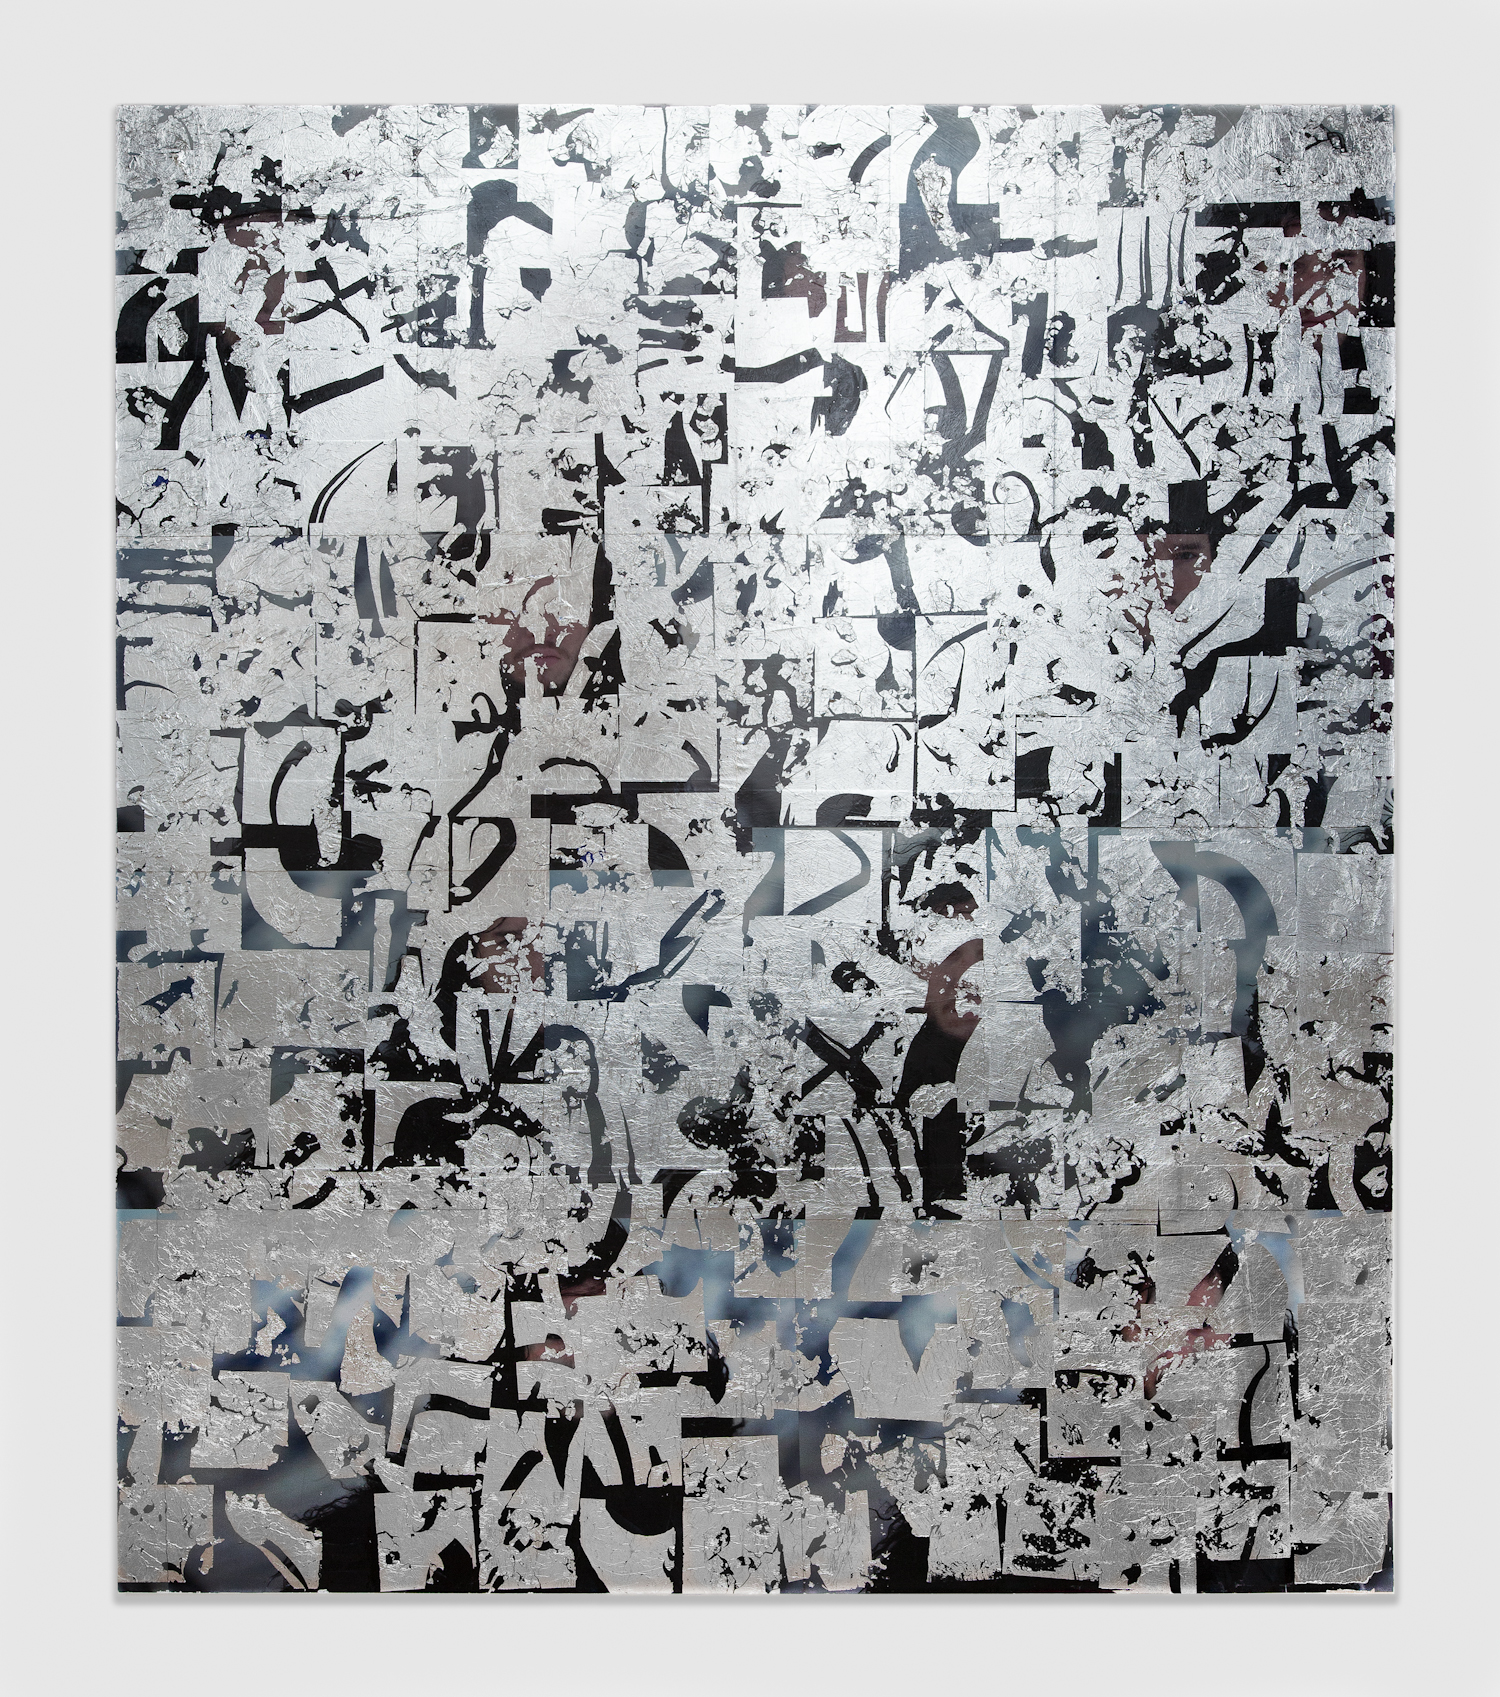 Brendan Lynch  Lord Snow  2013 Posters, aluminum leaf, matte medium and paint on wood panel 84 x 72 inches